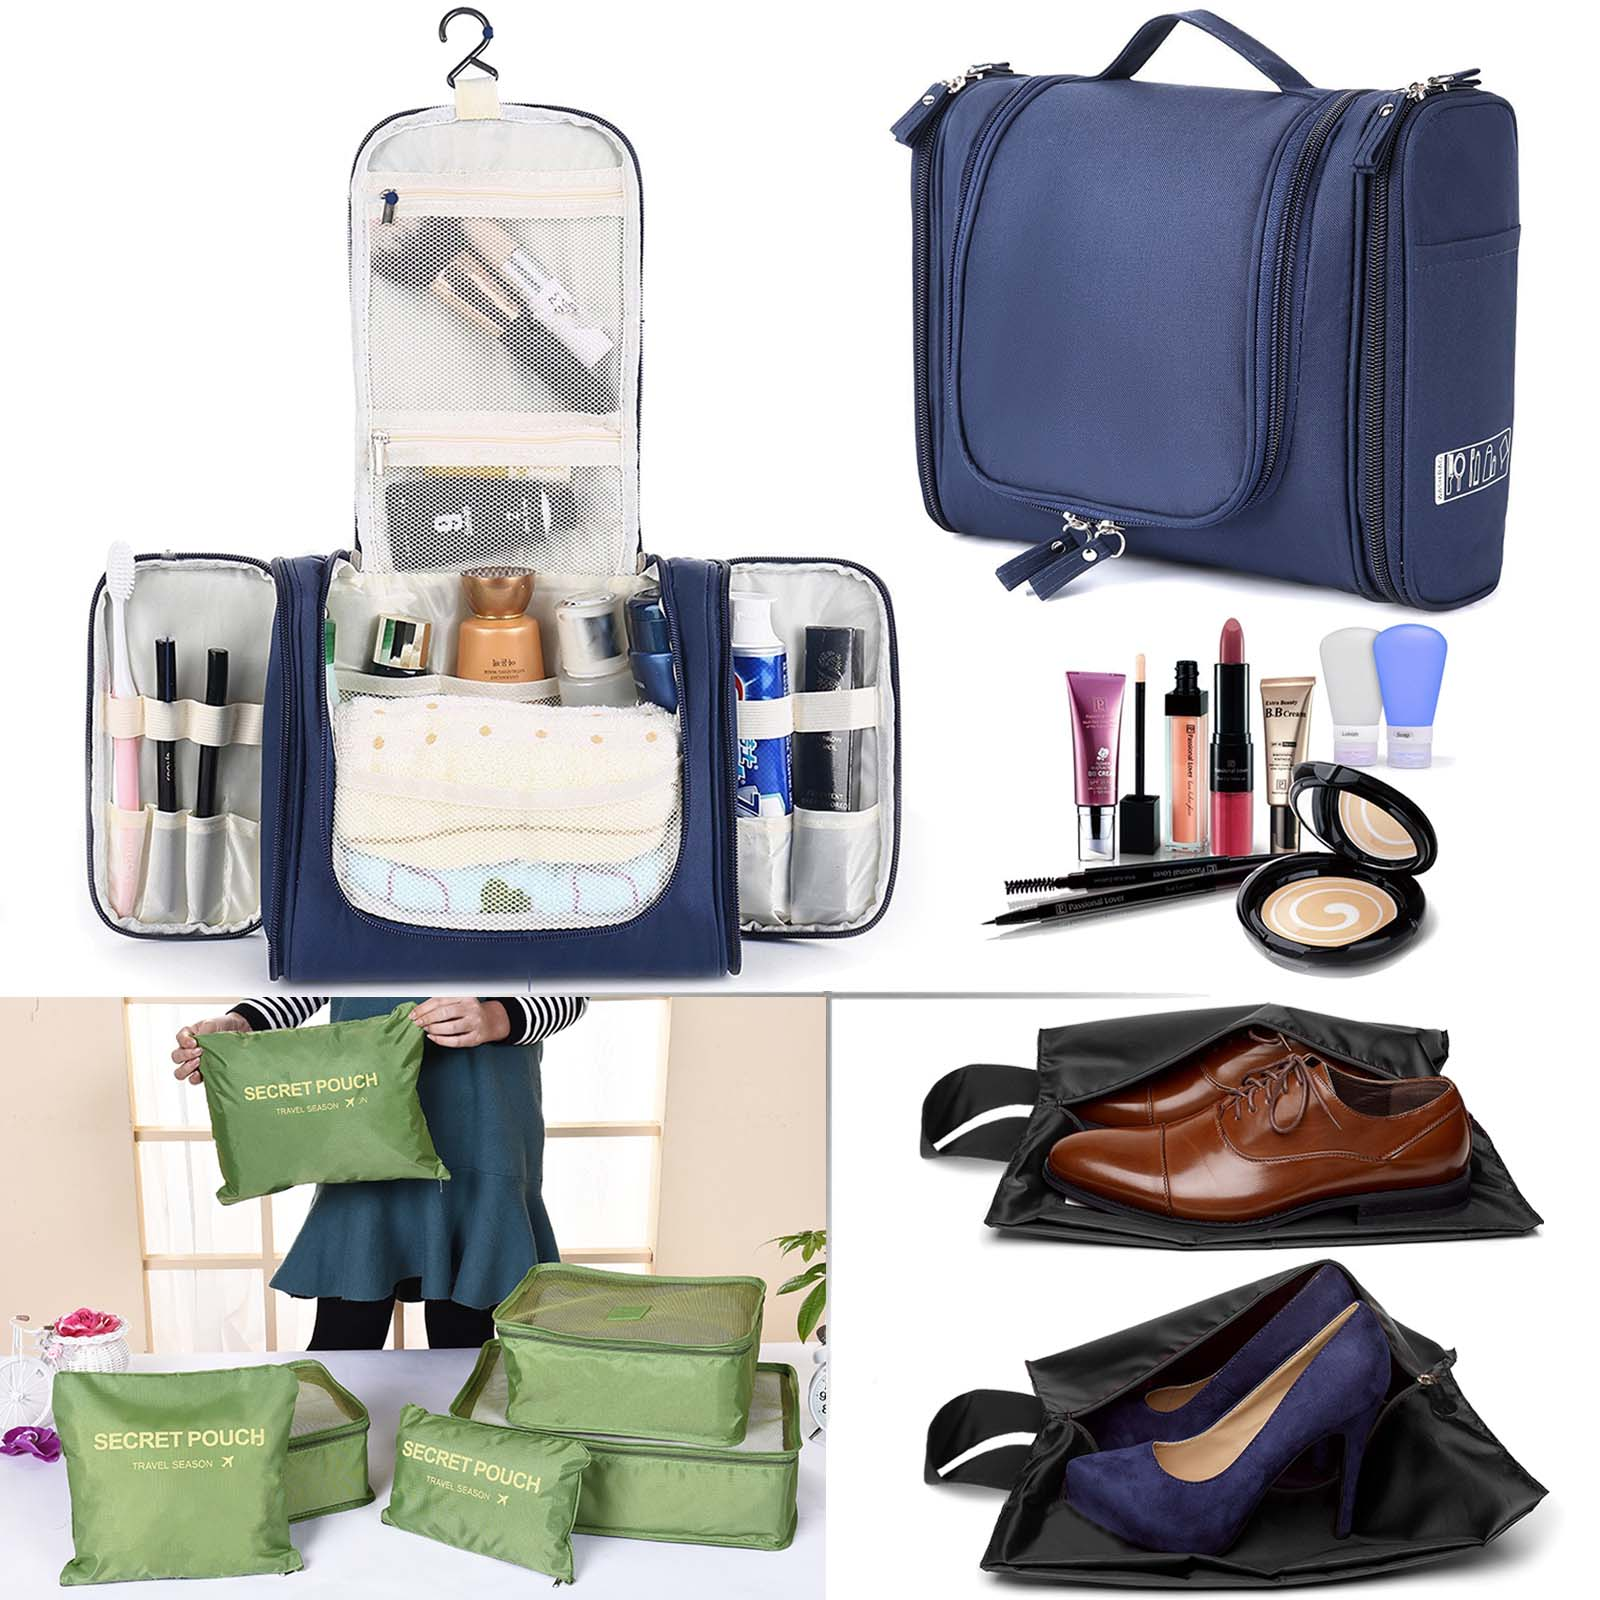 Details about Large Travel Toiletry Bag Heavy Duty Waterproof Women's Makeup Men's Shaving Kit